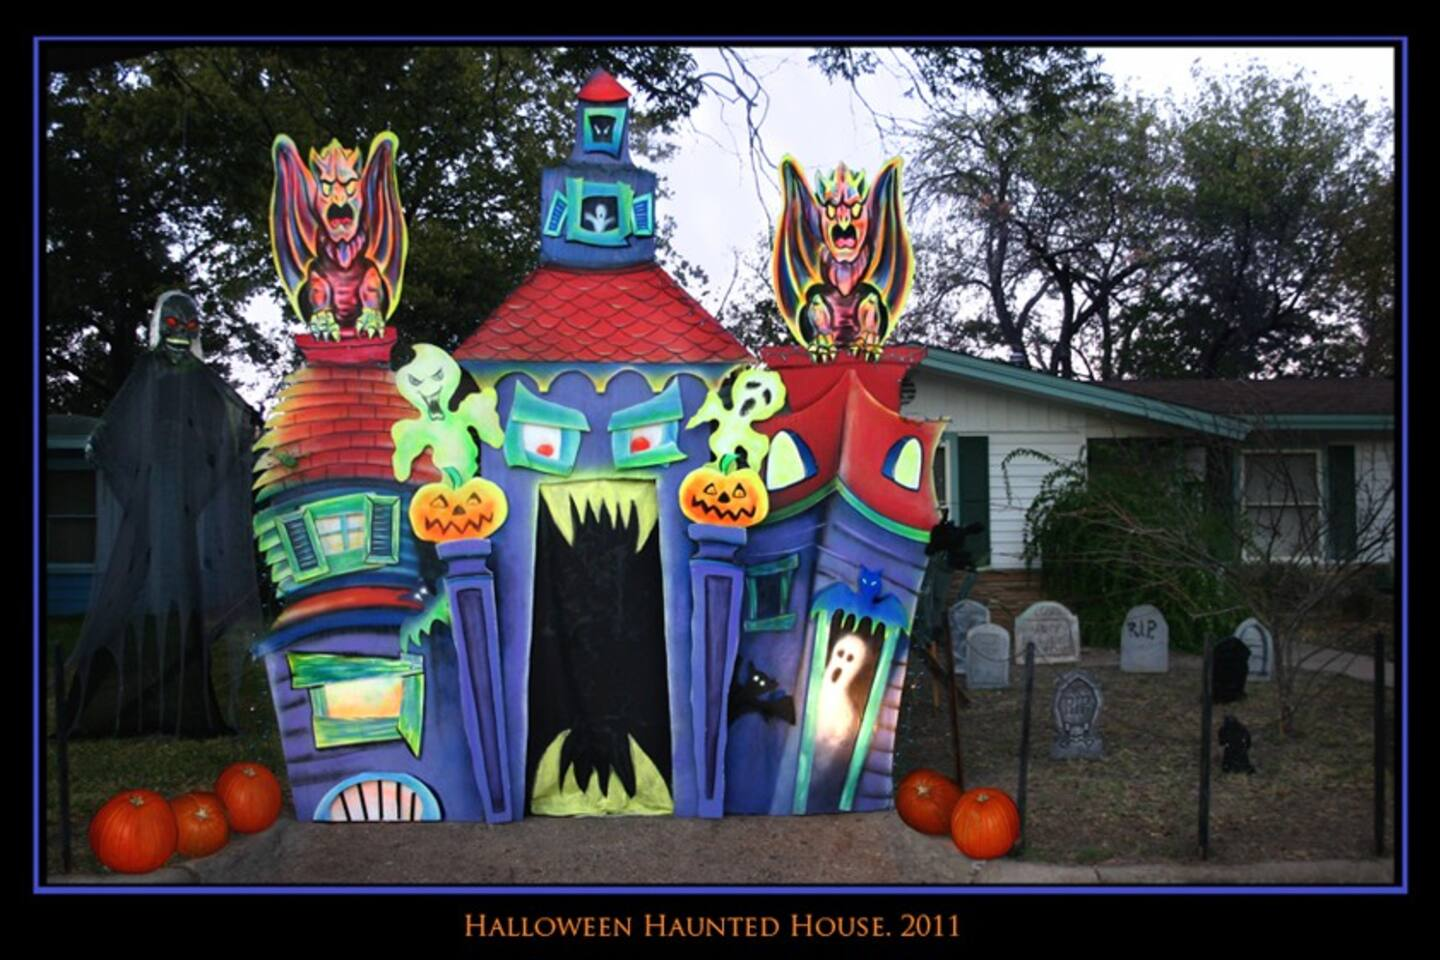 Visit us in Ocober and get an extra treat! we build a Haunted House for the neighborhood kids.